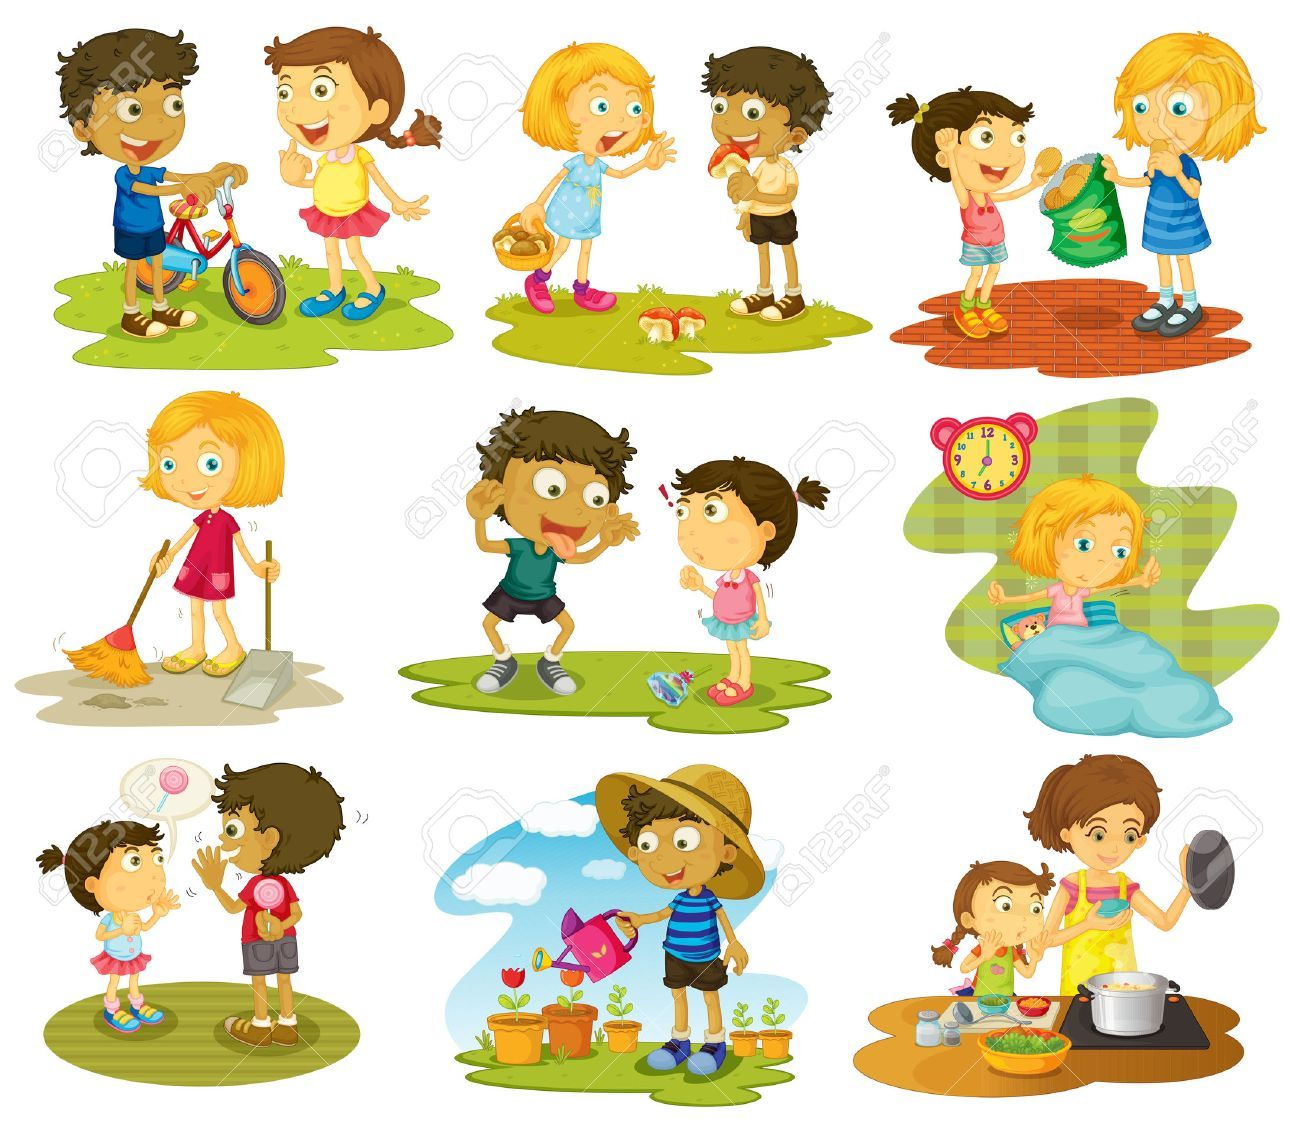 Clipart someone doing chores clipart royalty free library Child doing chores clipart 3 » Clipart Portal clipart royalty free library